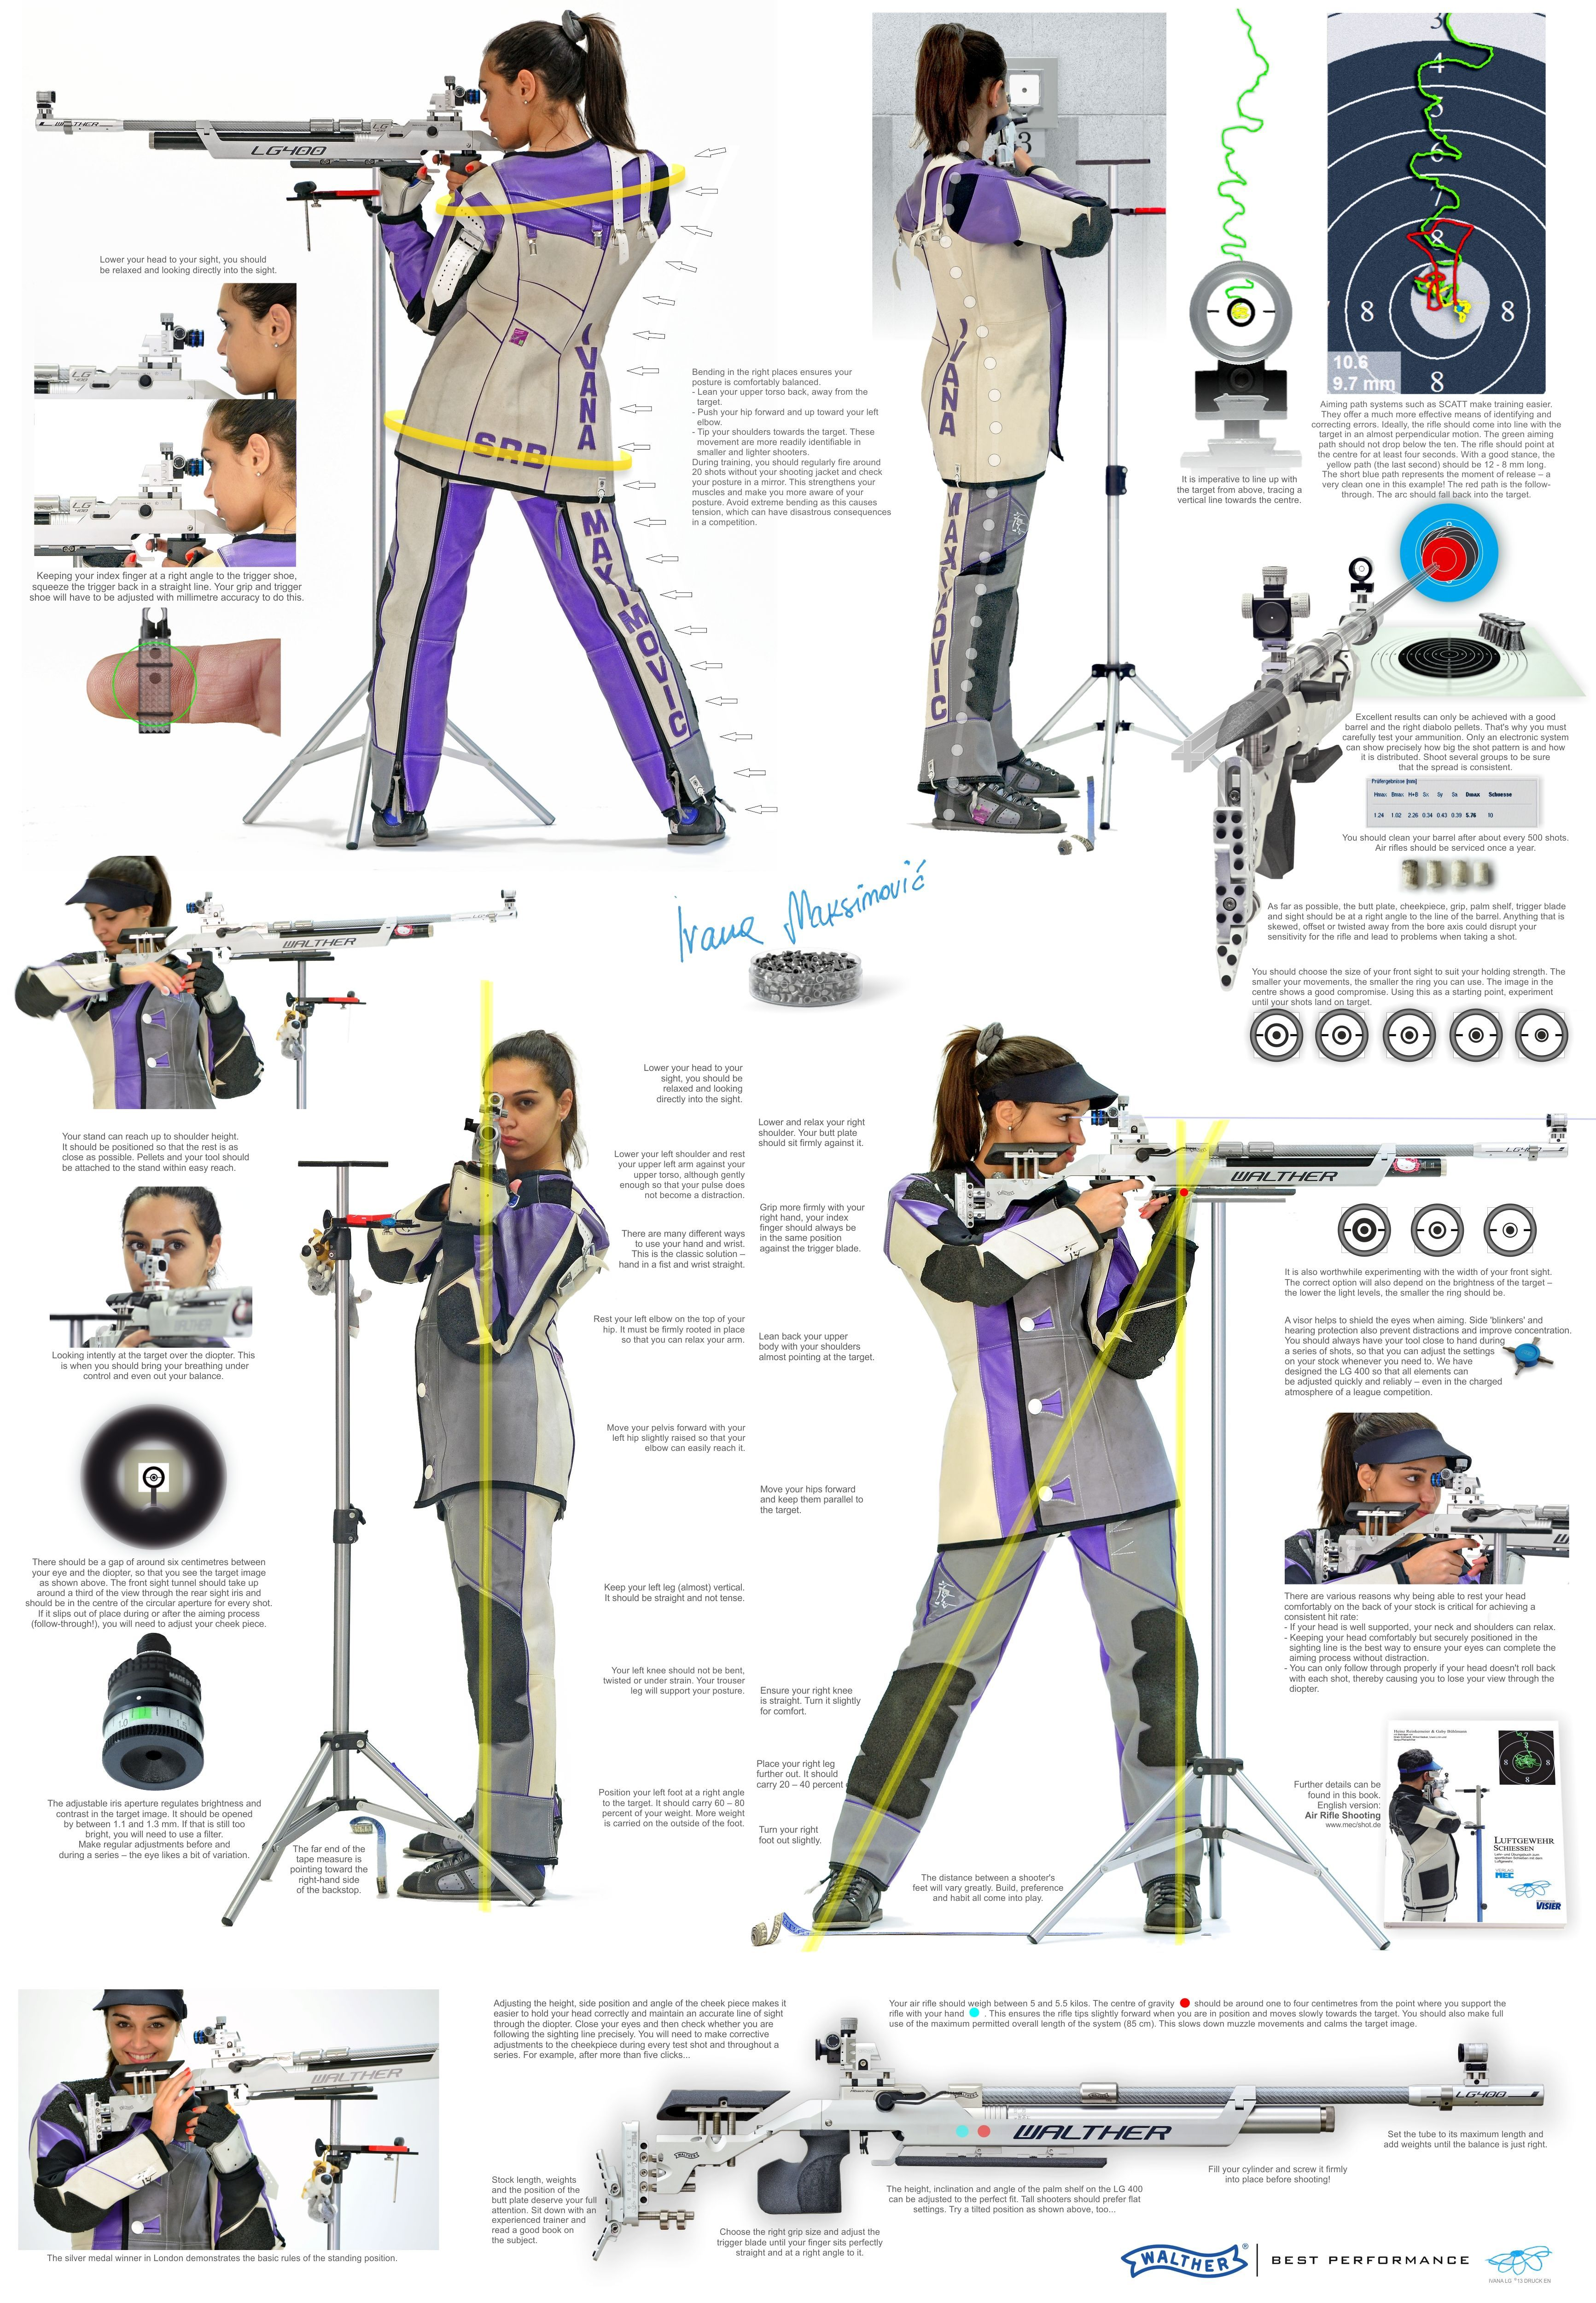 Pin by Dwight Guy on Survive | Air rifle, Rifle targets, Guns